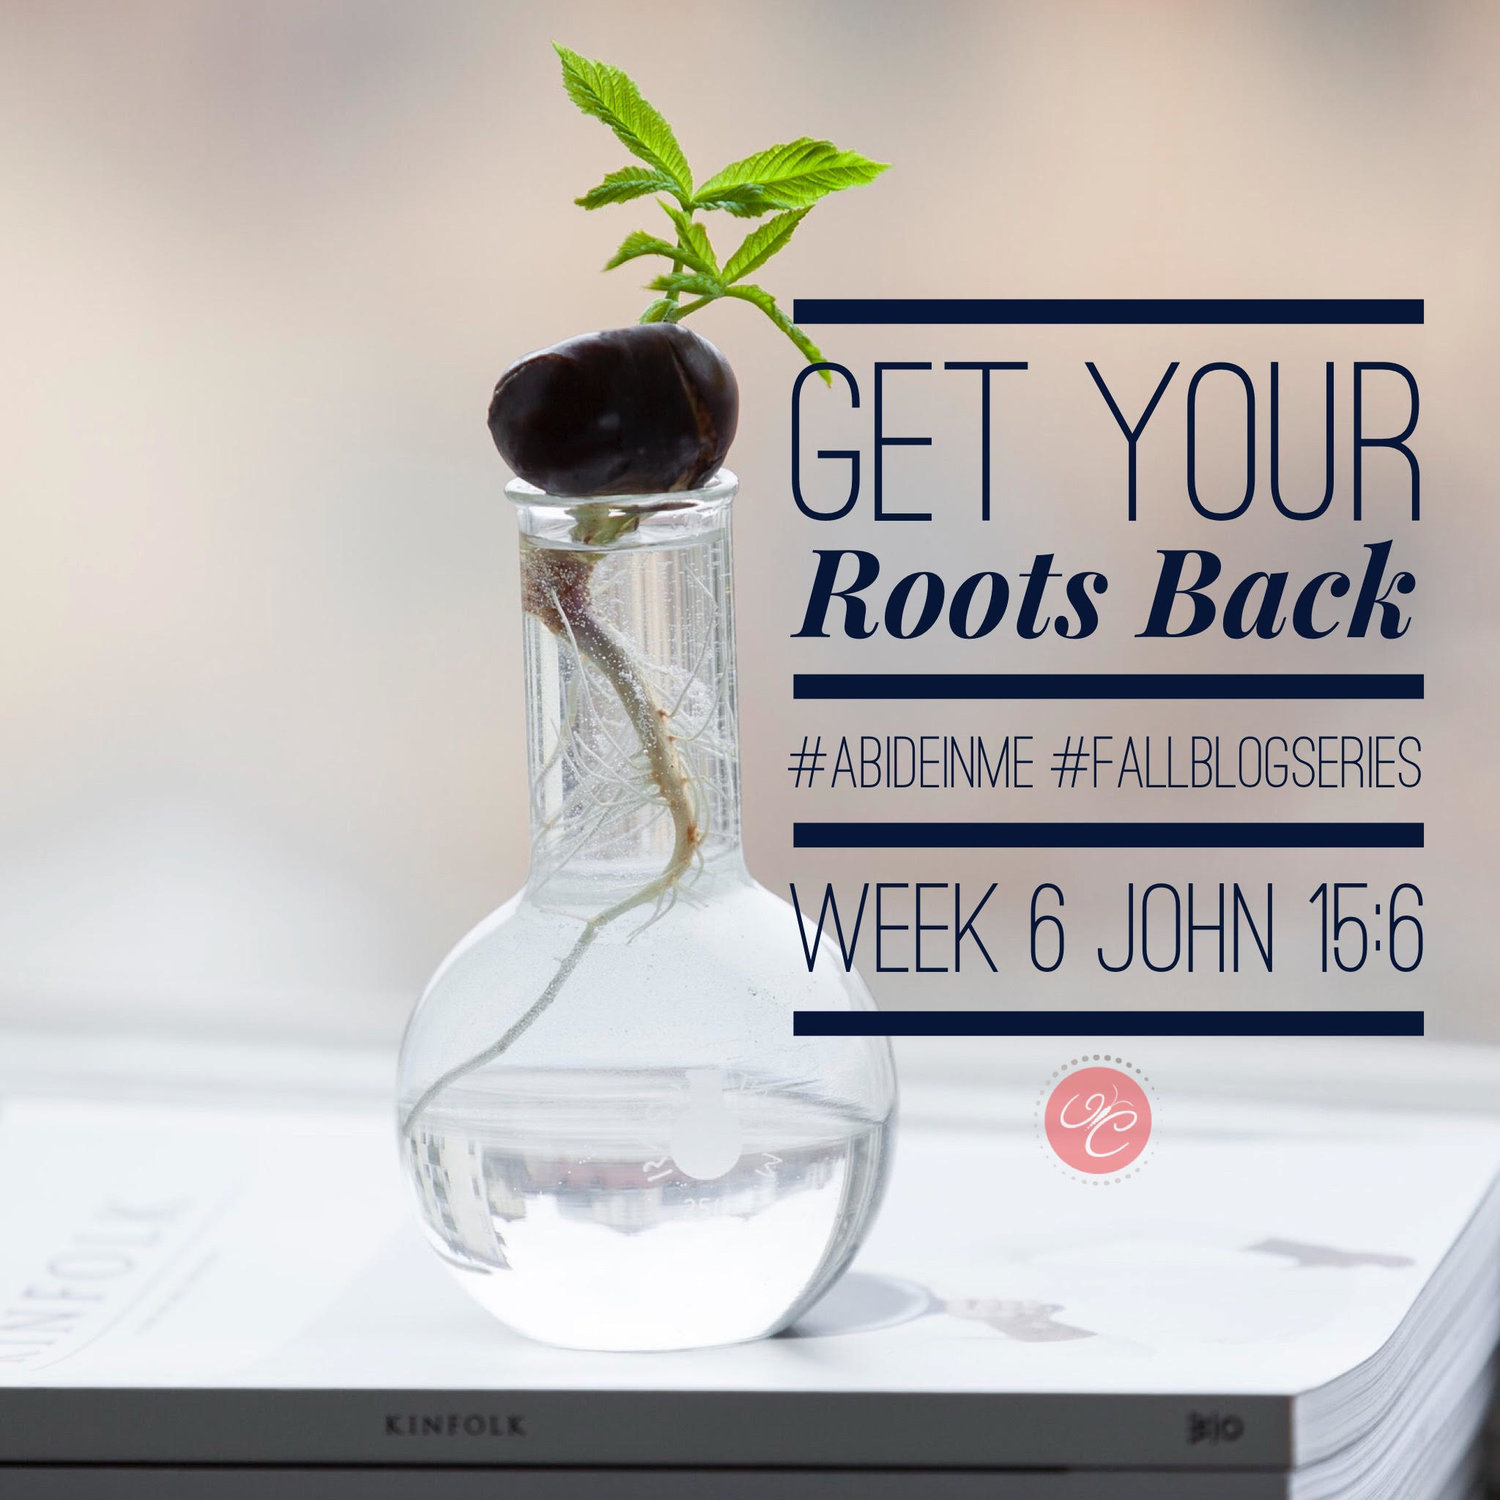 Get Your Roots Back: John 15:6